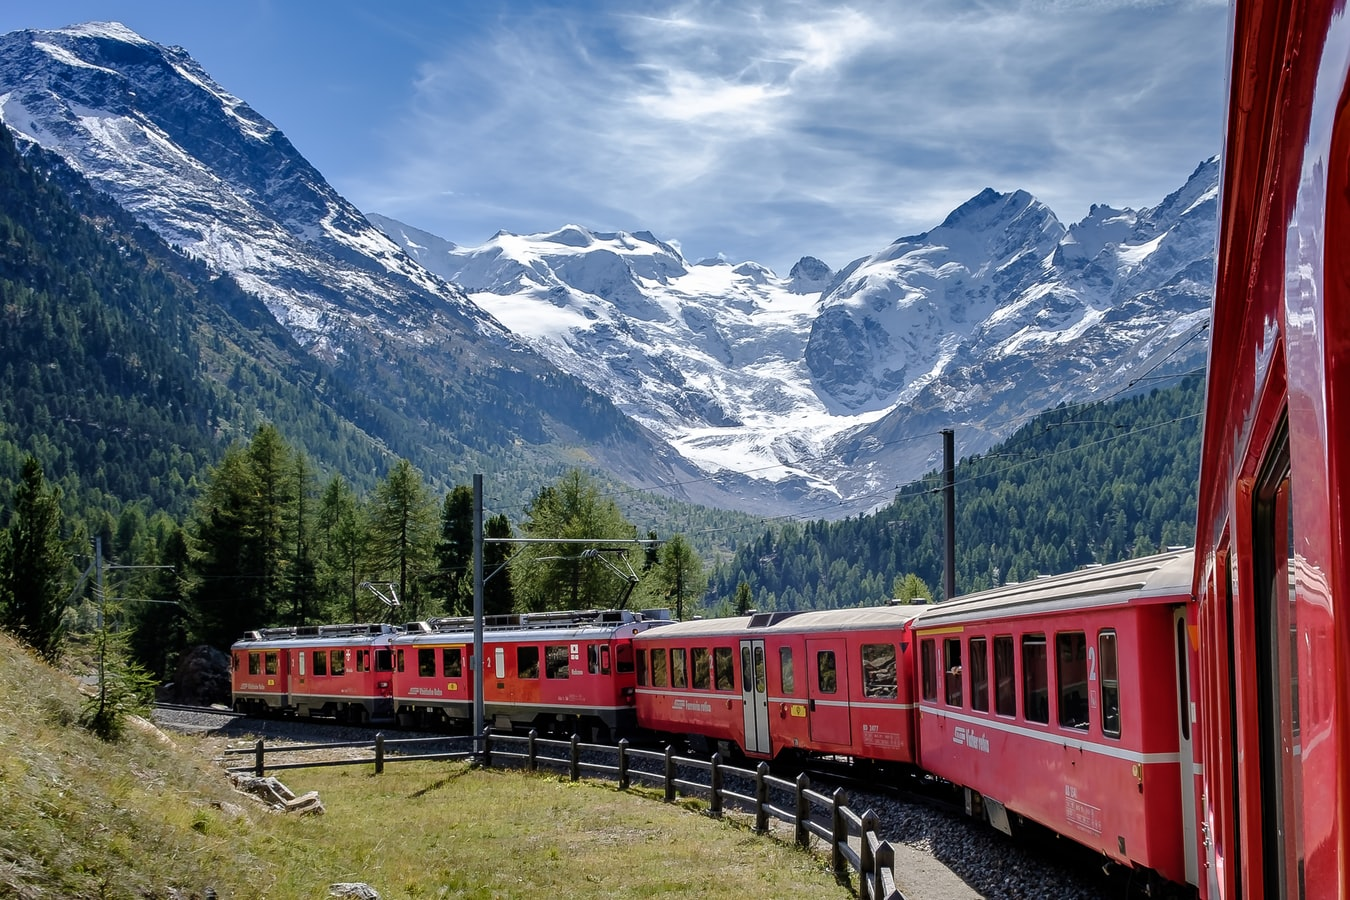 a red train in Switzerland with mountains in the background